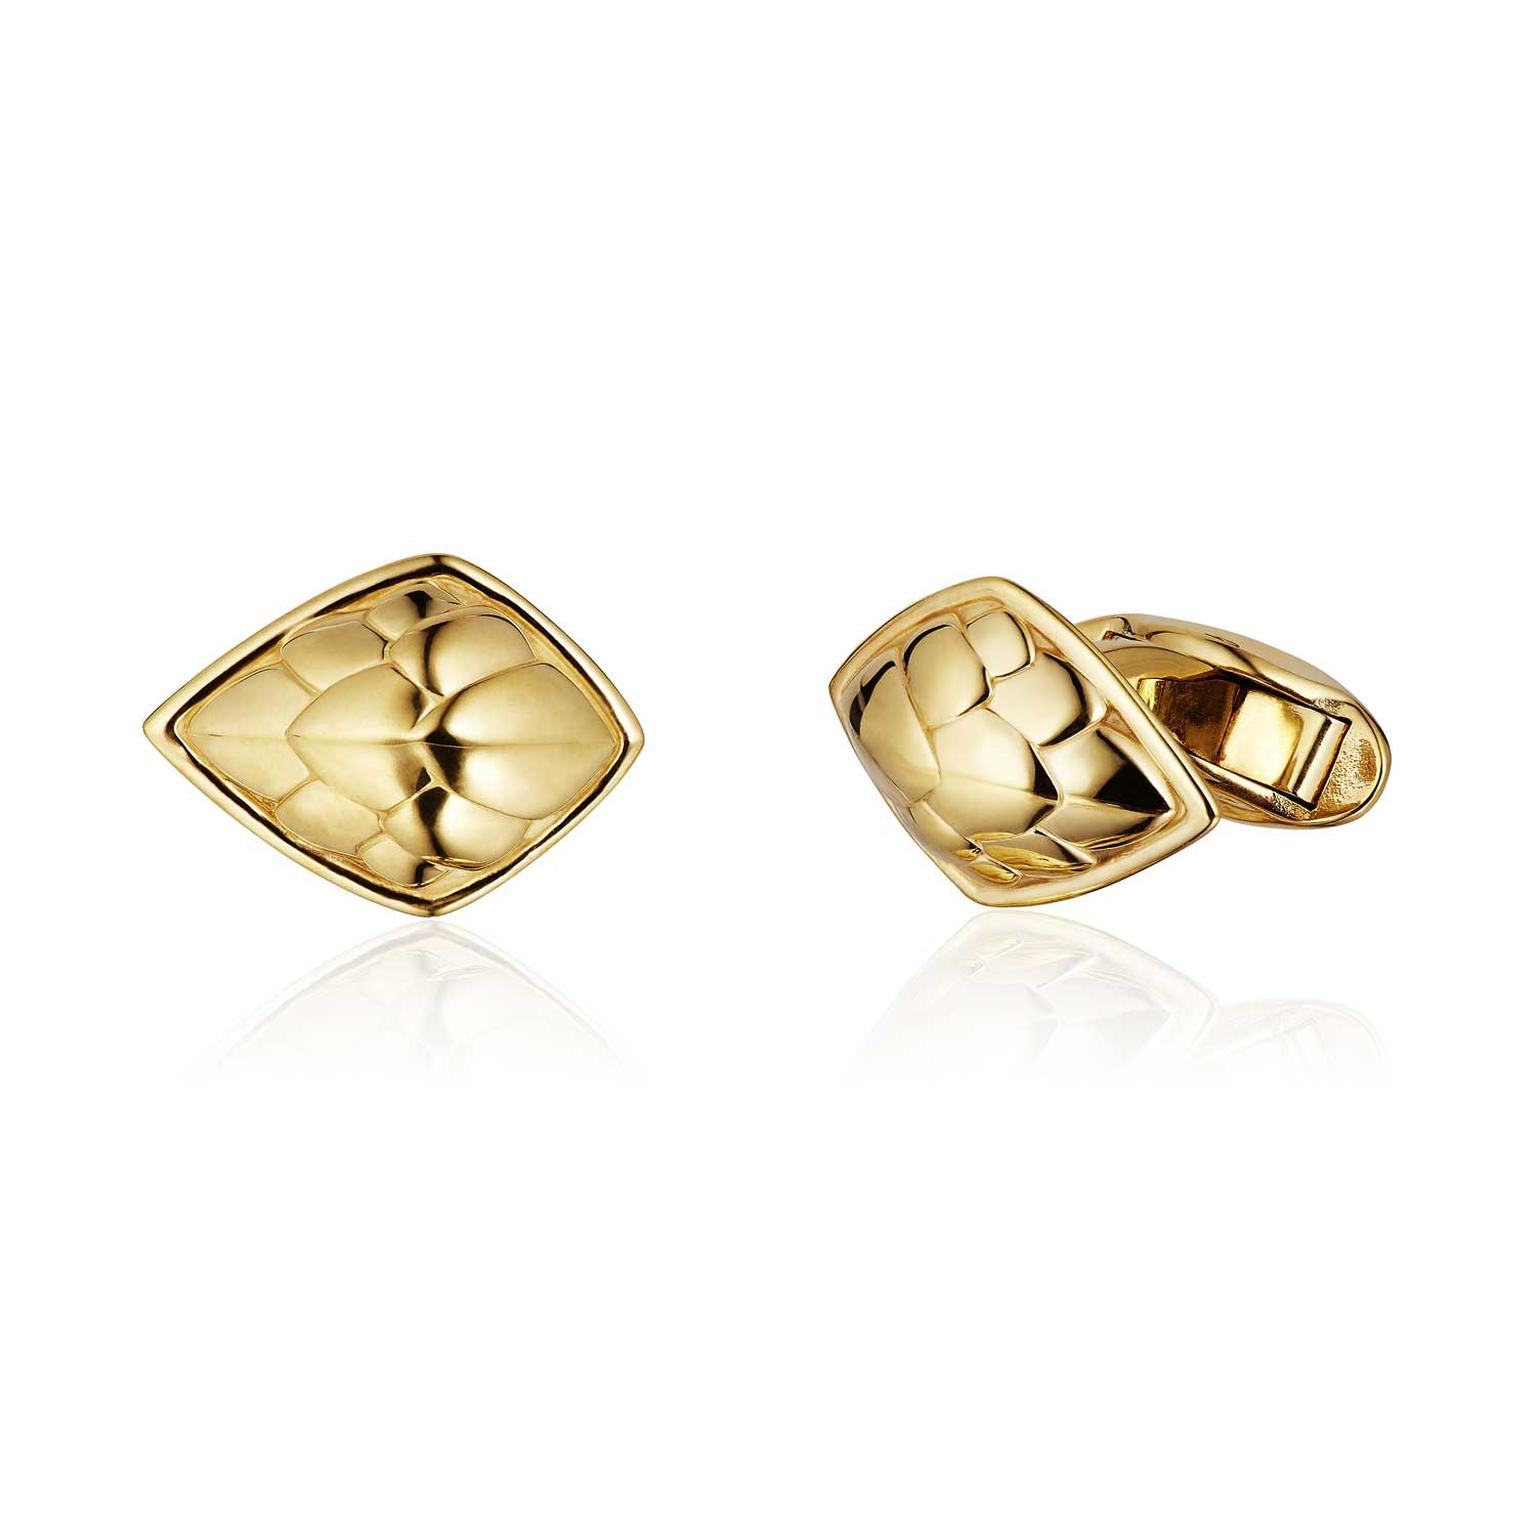 Patrick Mavros Pangolin Shield gold cufflinks